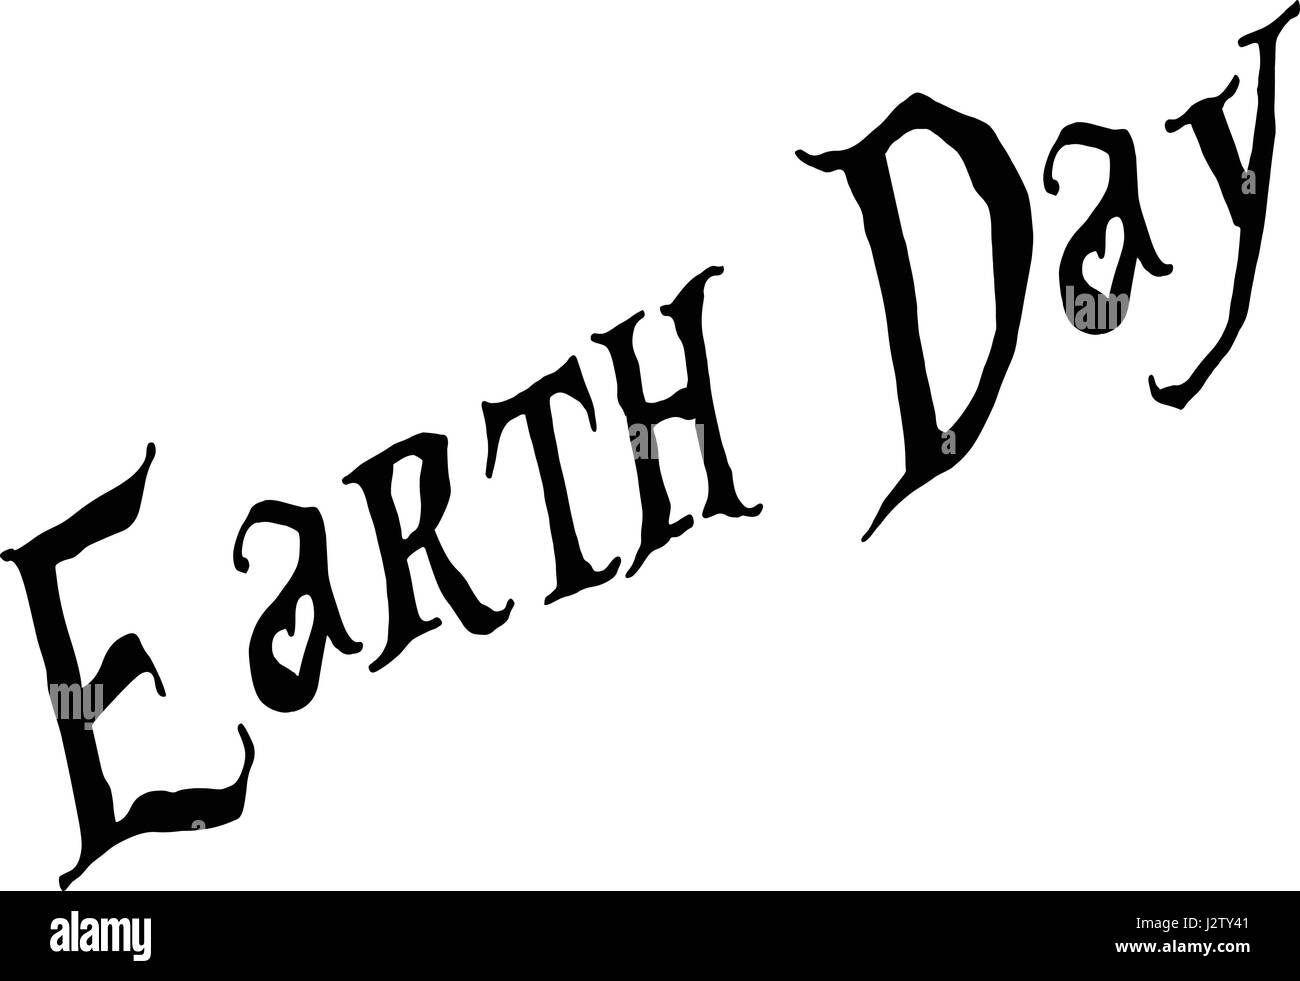 Eart day text sign illustration on white back ground - Stock Image